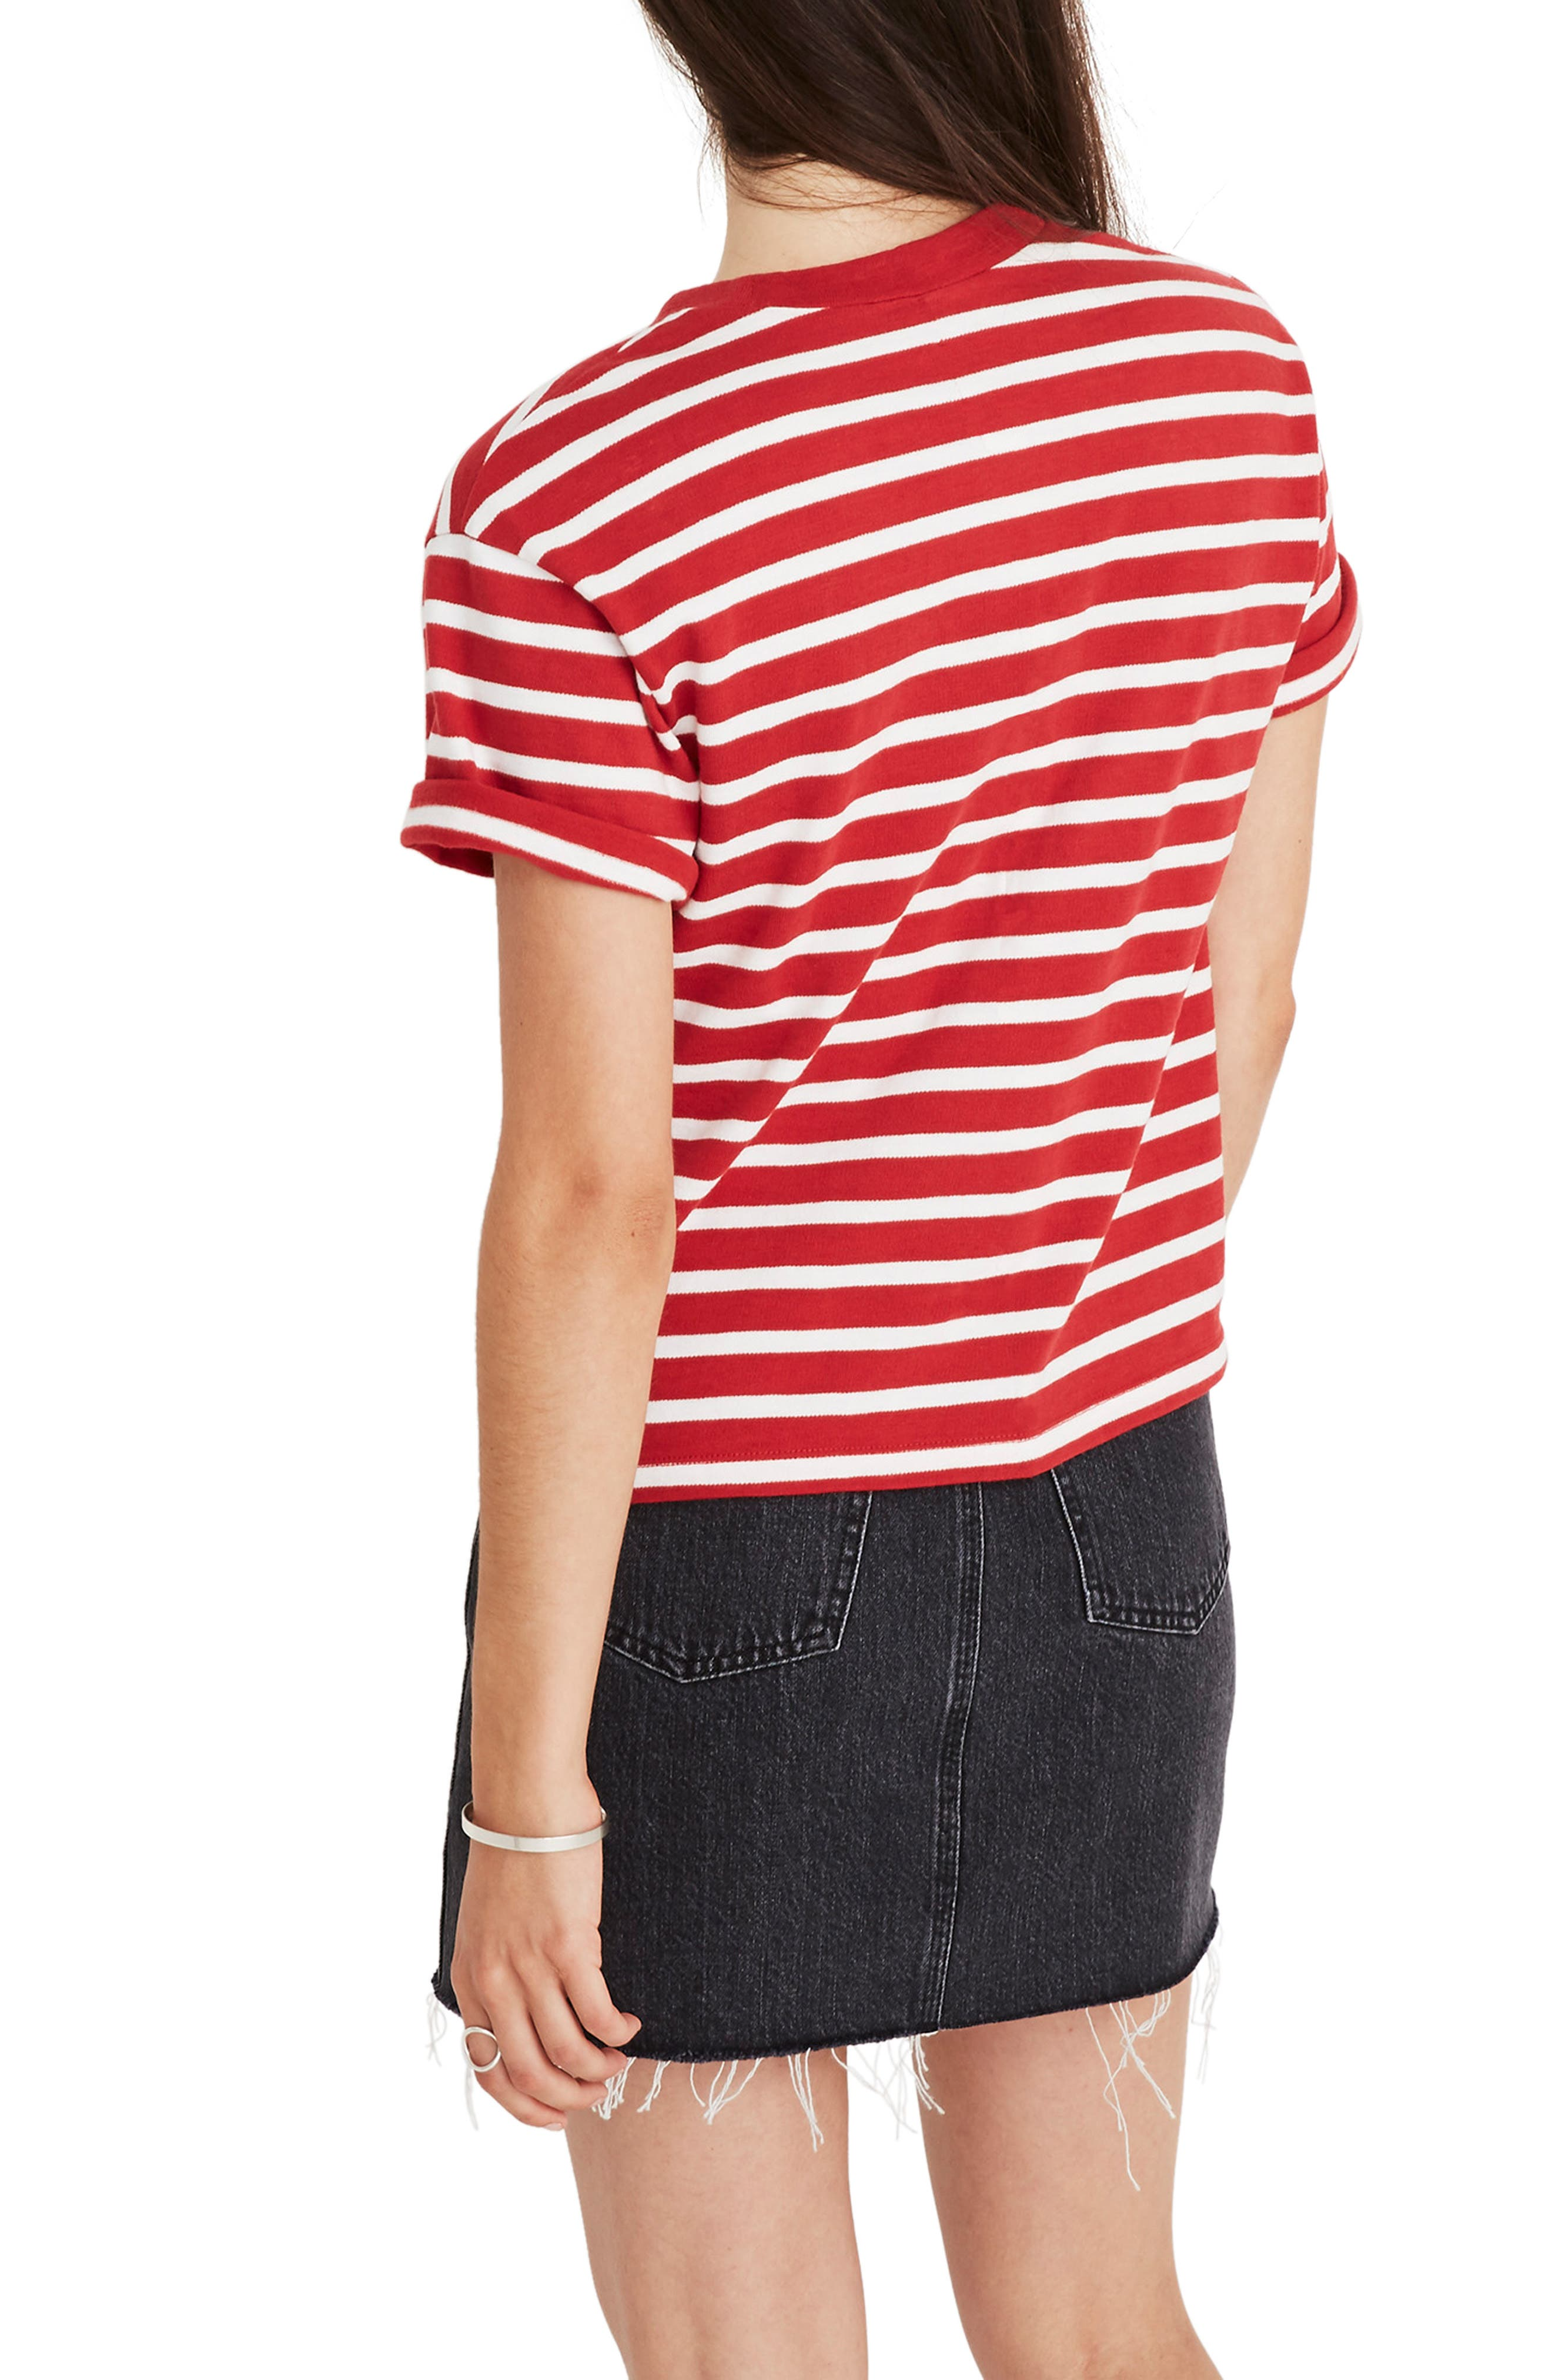 MADEWELL,                             Stripe Ciao for Now Tee,                             Alternate thumbnail 3, color,                             600